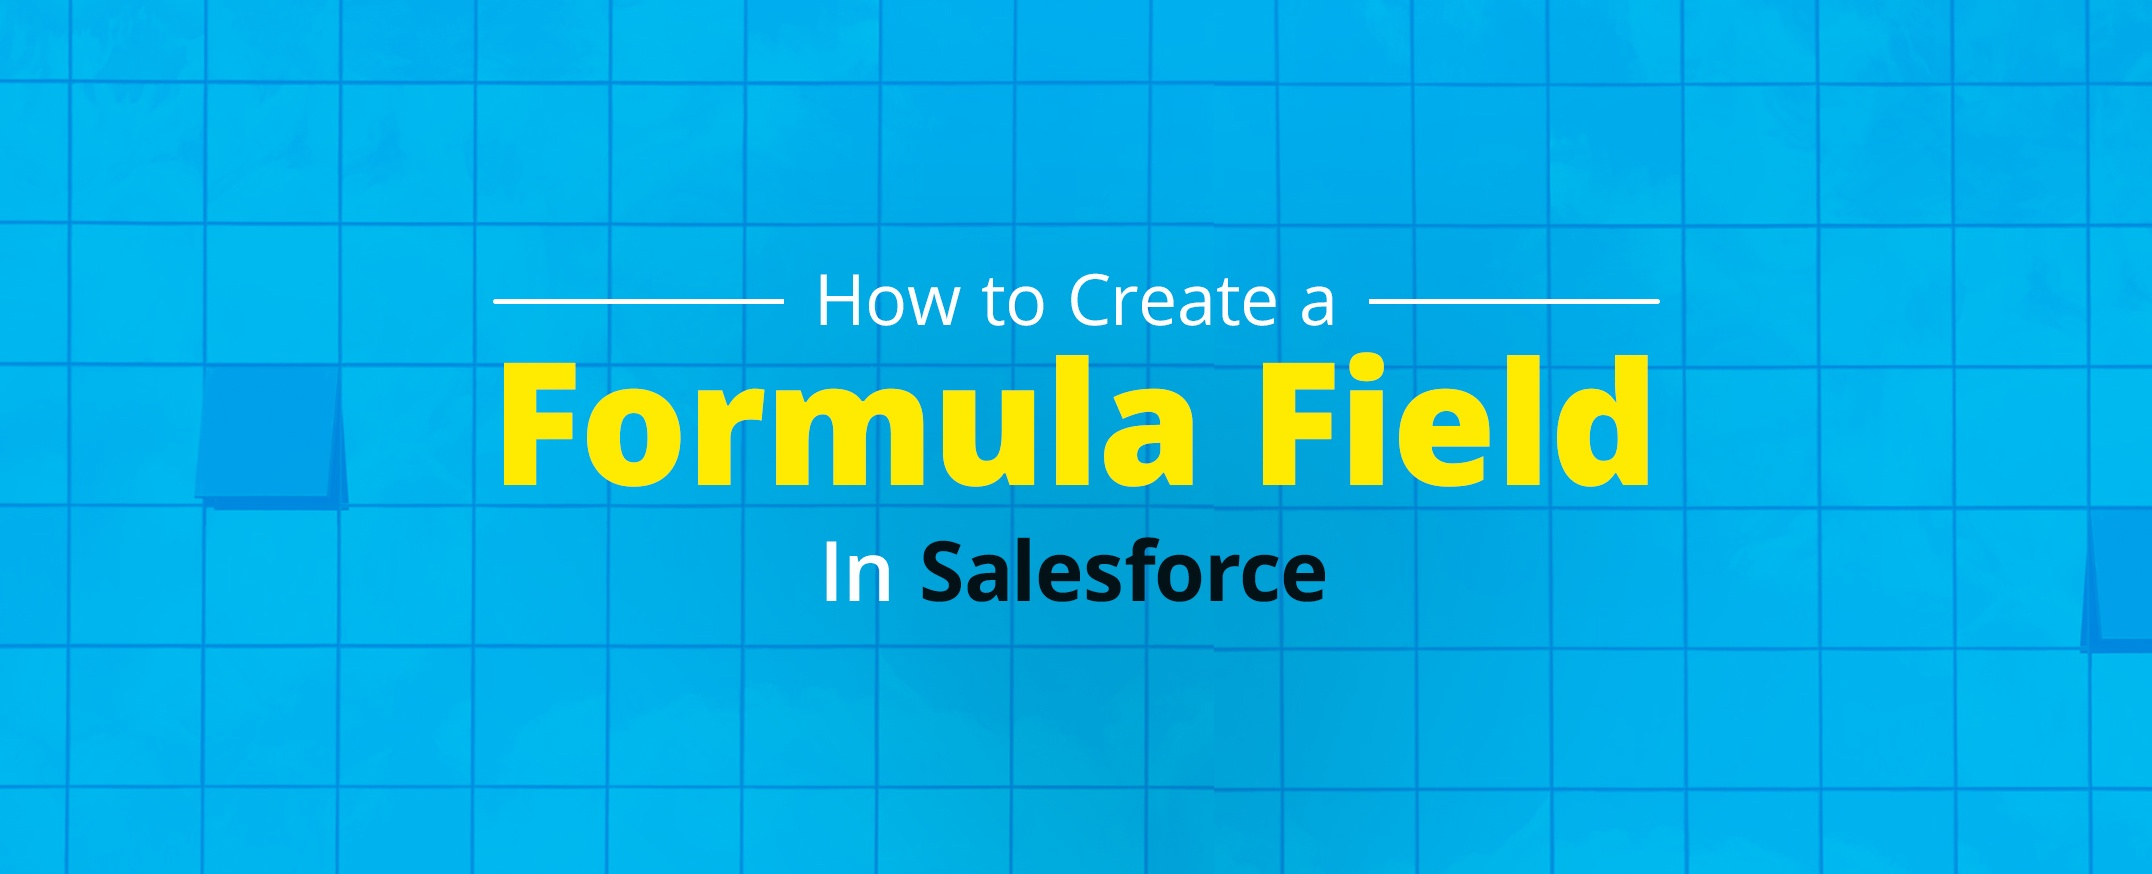 How-to-Create-a-Formula-Field-In-Salesforce